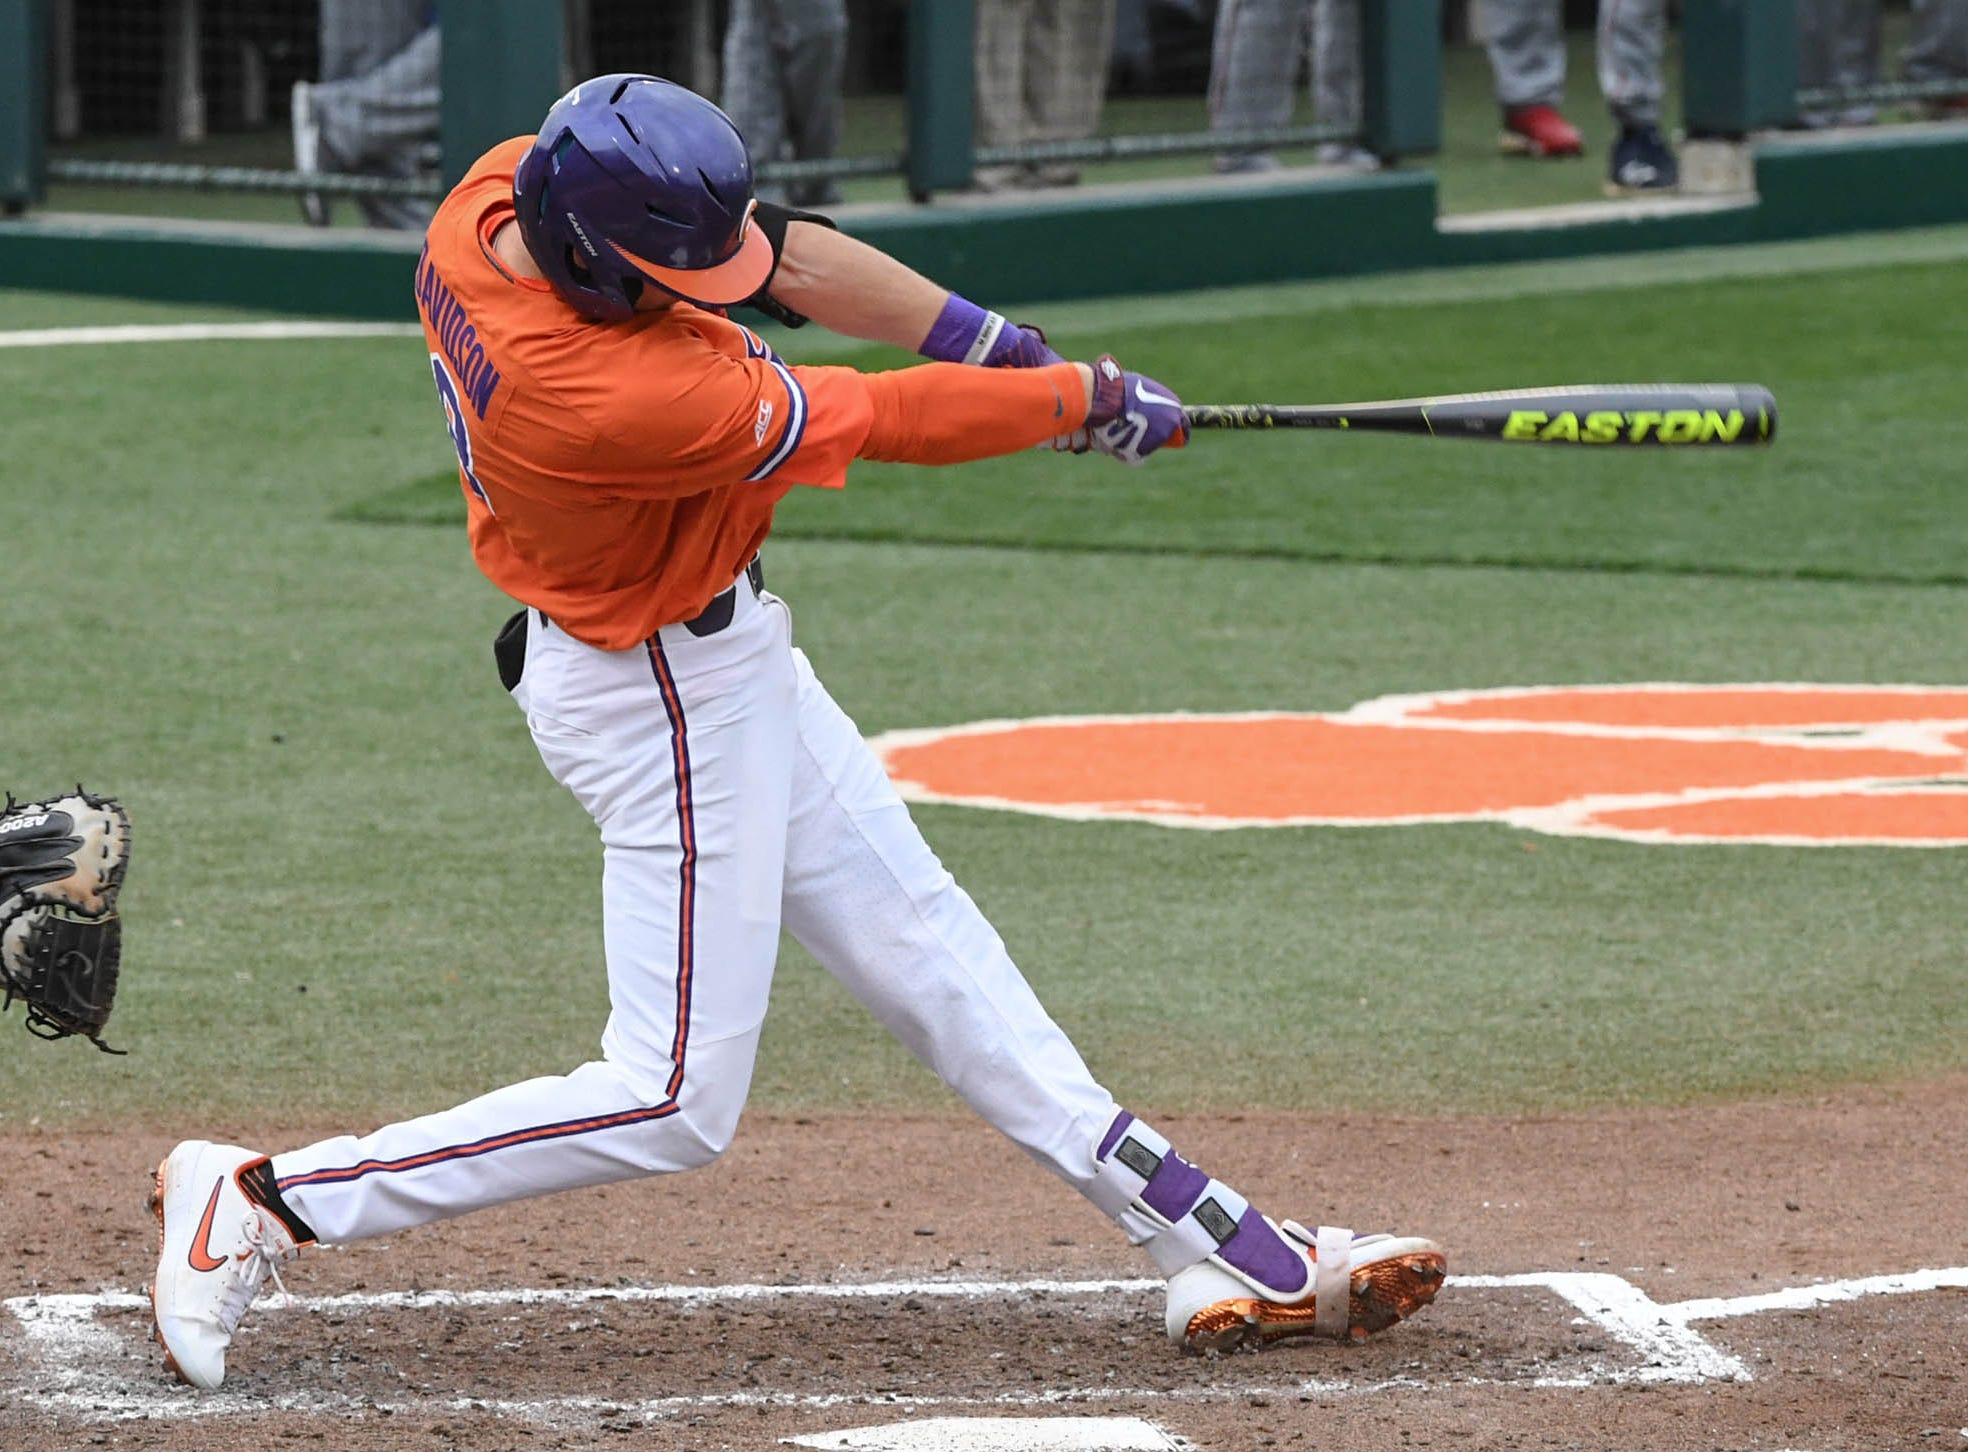 Clemson junior Logan Davidson(8) hits a three-run home run against South Alabama during the bottom of the fifth inning at Doug Kingsmore Stadium in Clemson Friday, February 15, 2019.